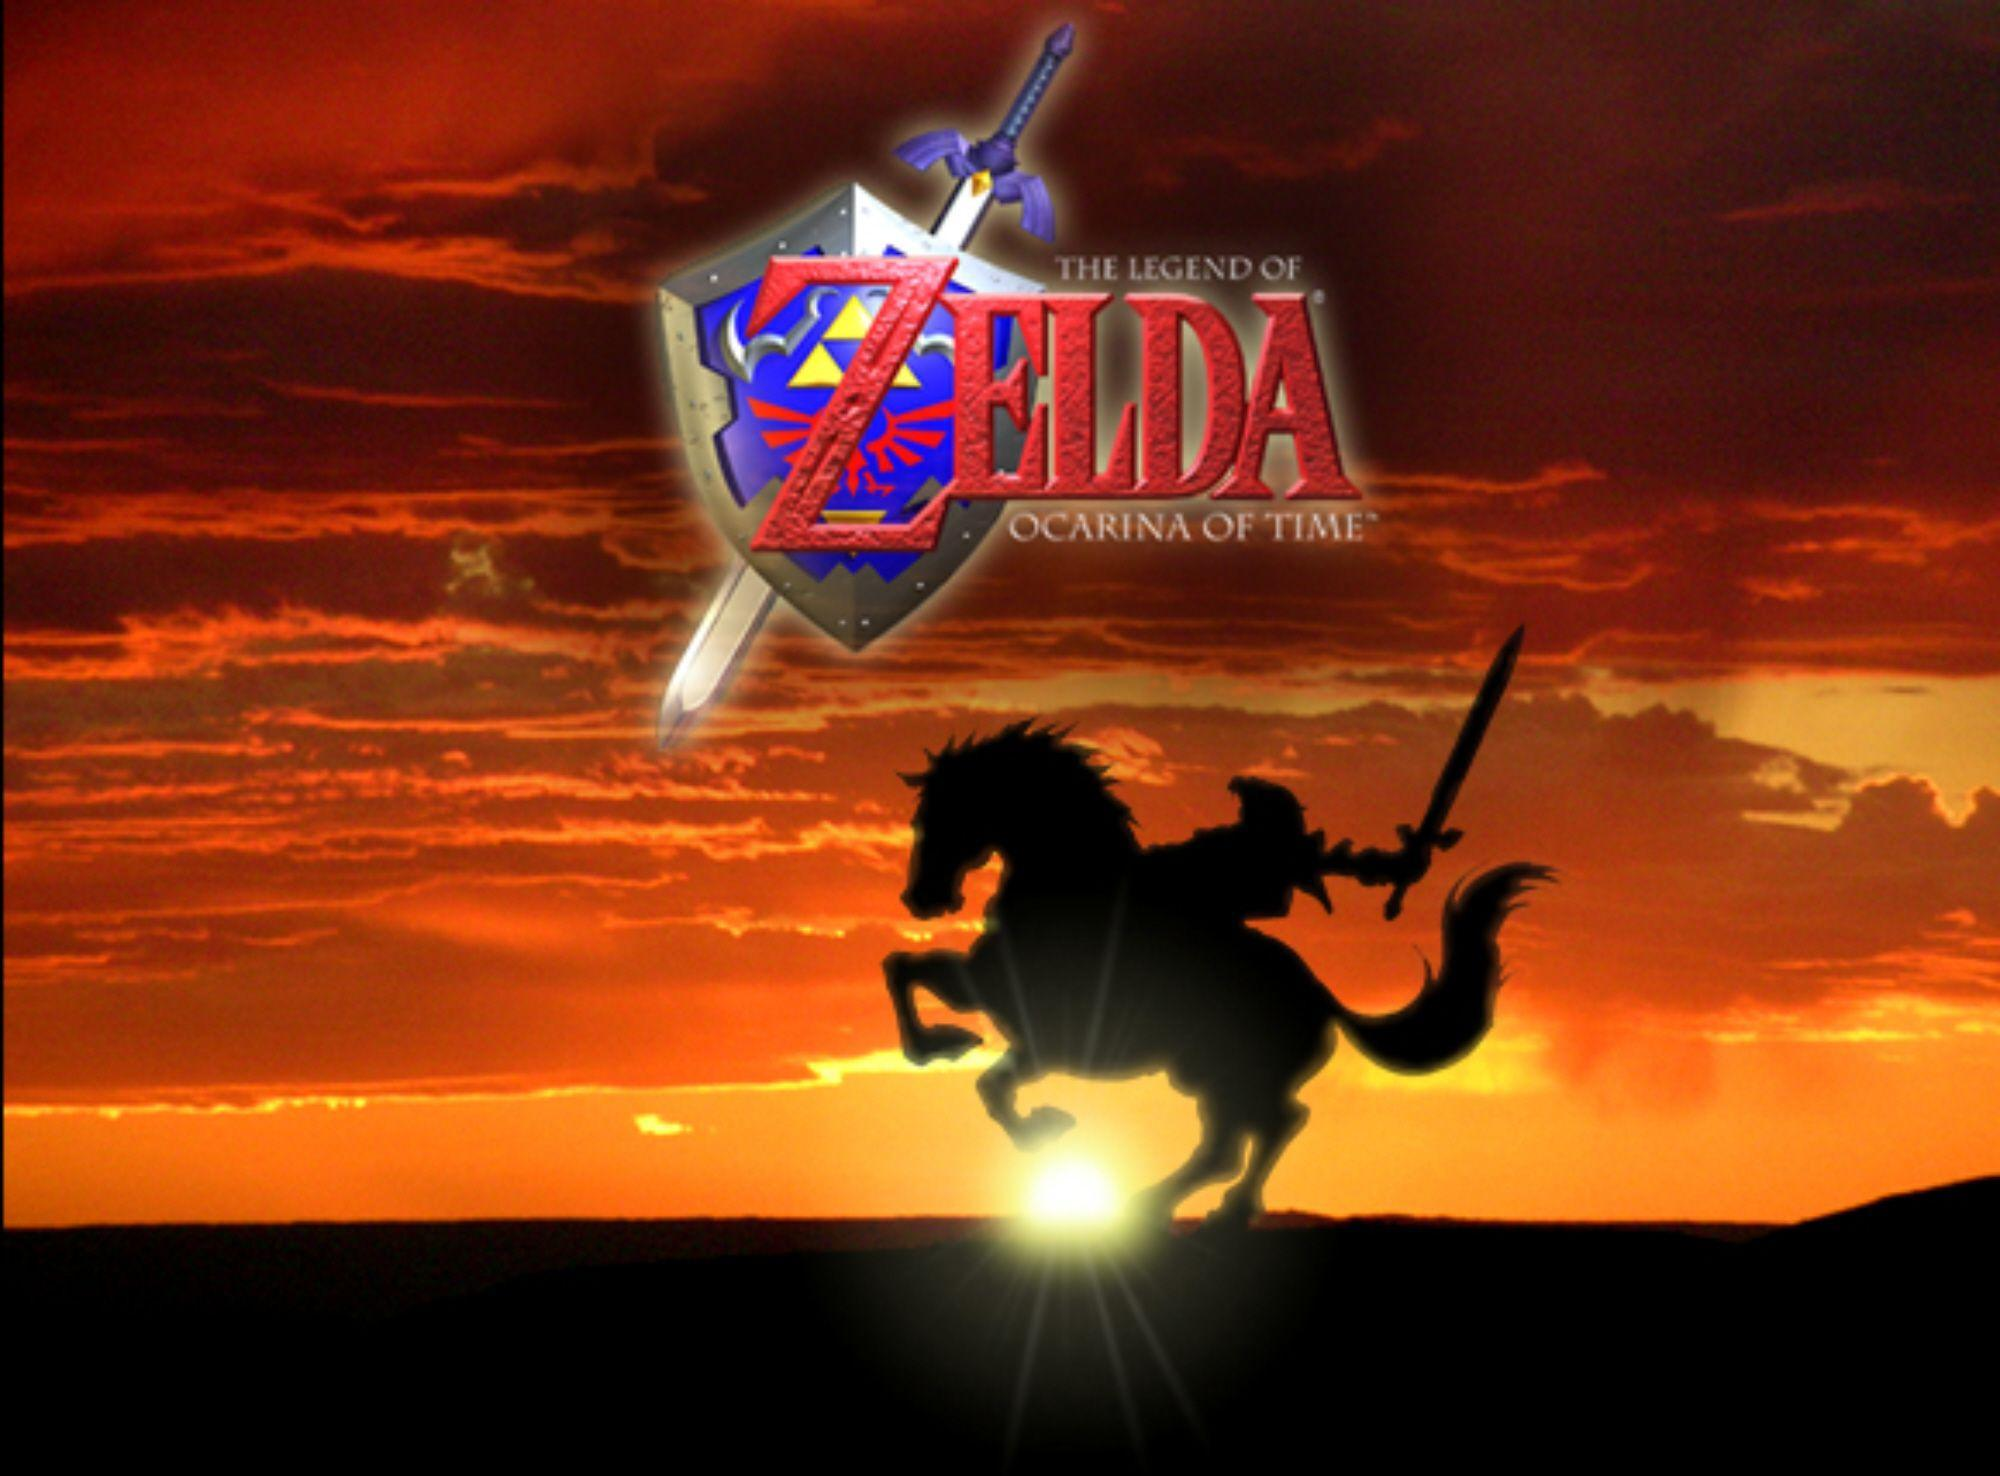 HD Quality The Legend of Zelda Ocarina of Time Wallpapers 6 Game